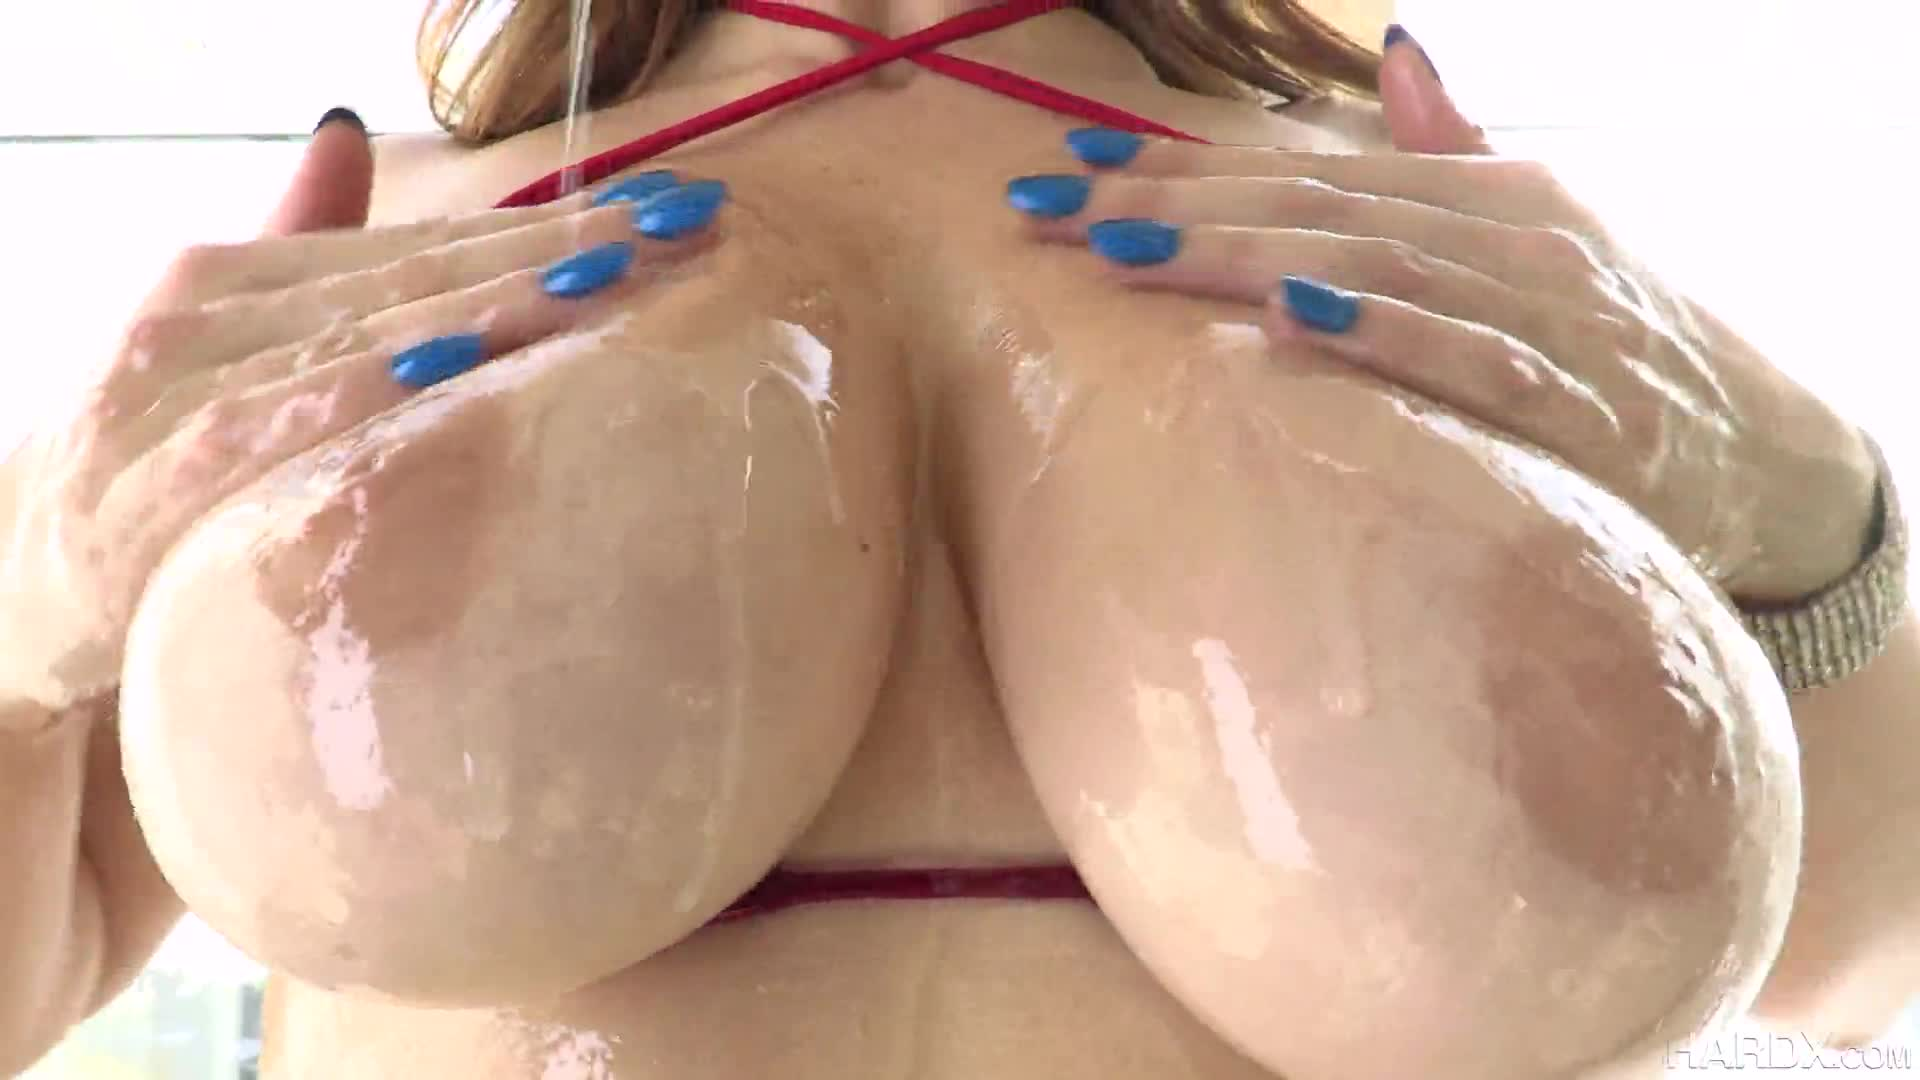 598-Exclusive – Fuck That Oiled Big Ass And Get Some Pleasure